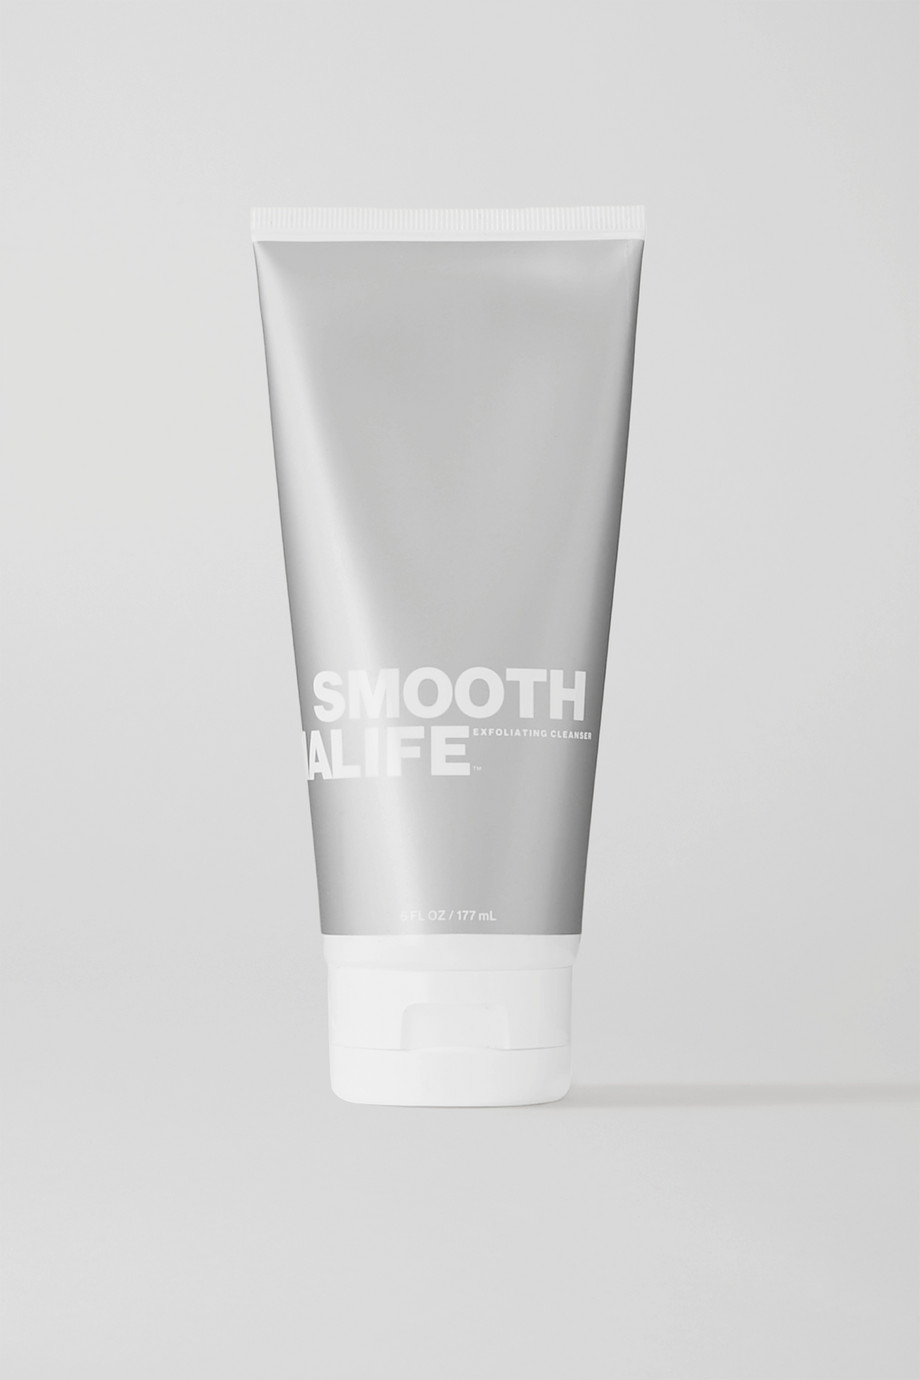 NORMAKAMALIFE Smooth Exfoliating Cleanser, 177ml